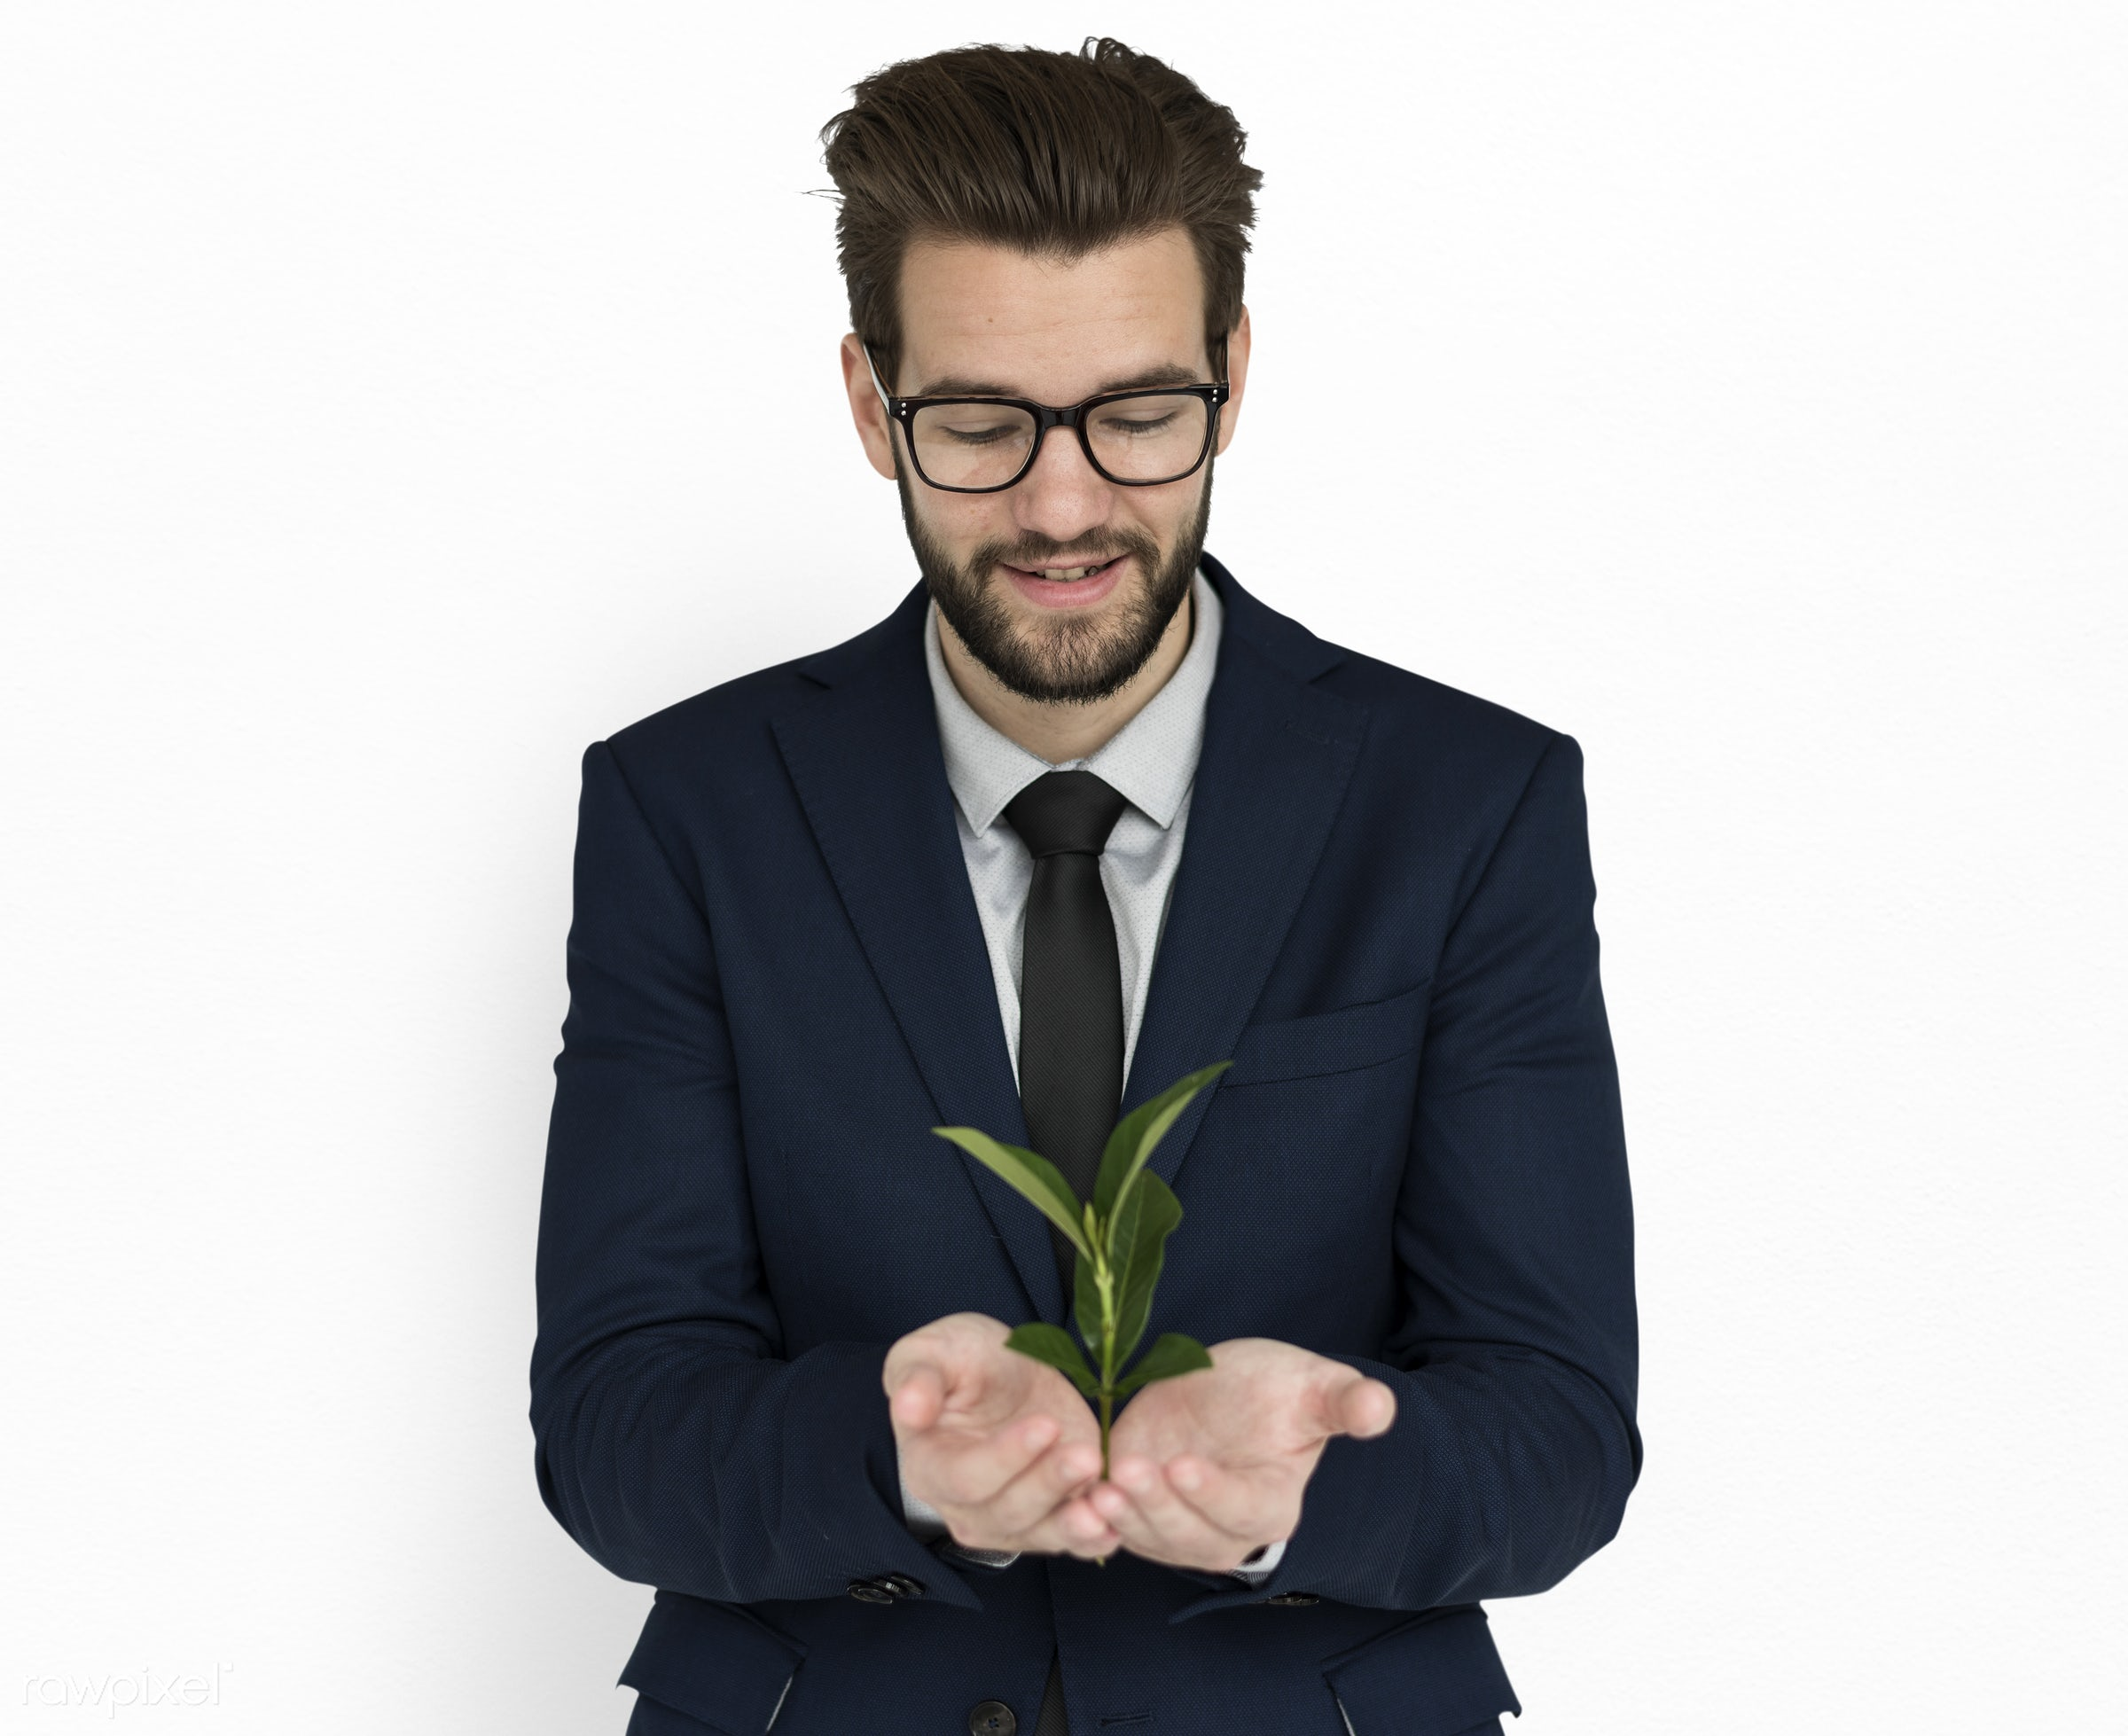 plant, expression, studio, person, business wear, holding, people, caucasian, happy, care, smile, cheerful, man, smiling,...